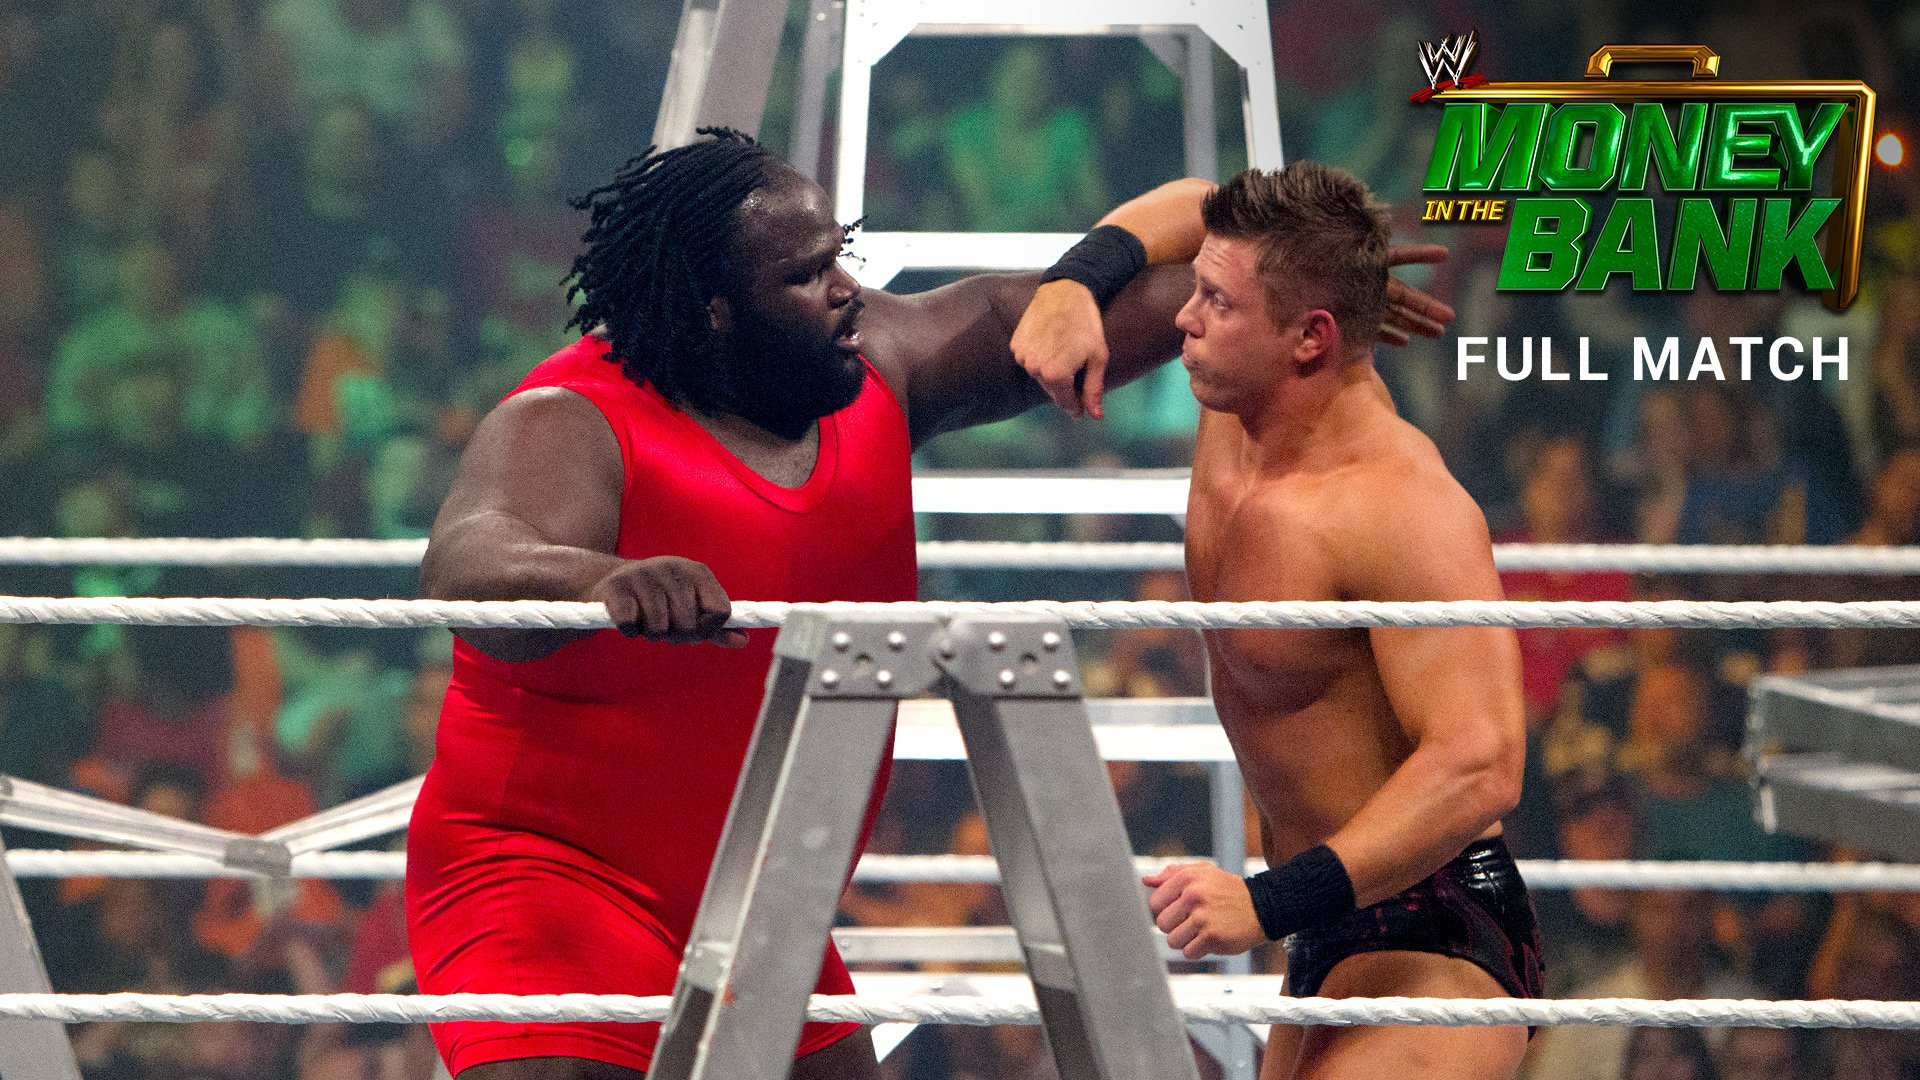 Money in the Bank Ladder Match for a WWE Title Match Contract: Money in the Bank 2010 (Full Match - WWE Network Exclusive)